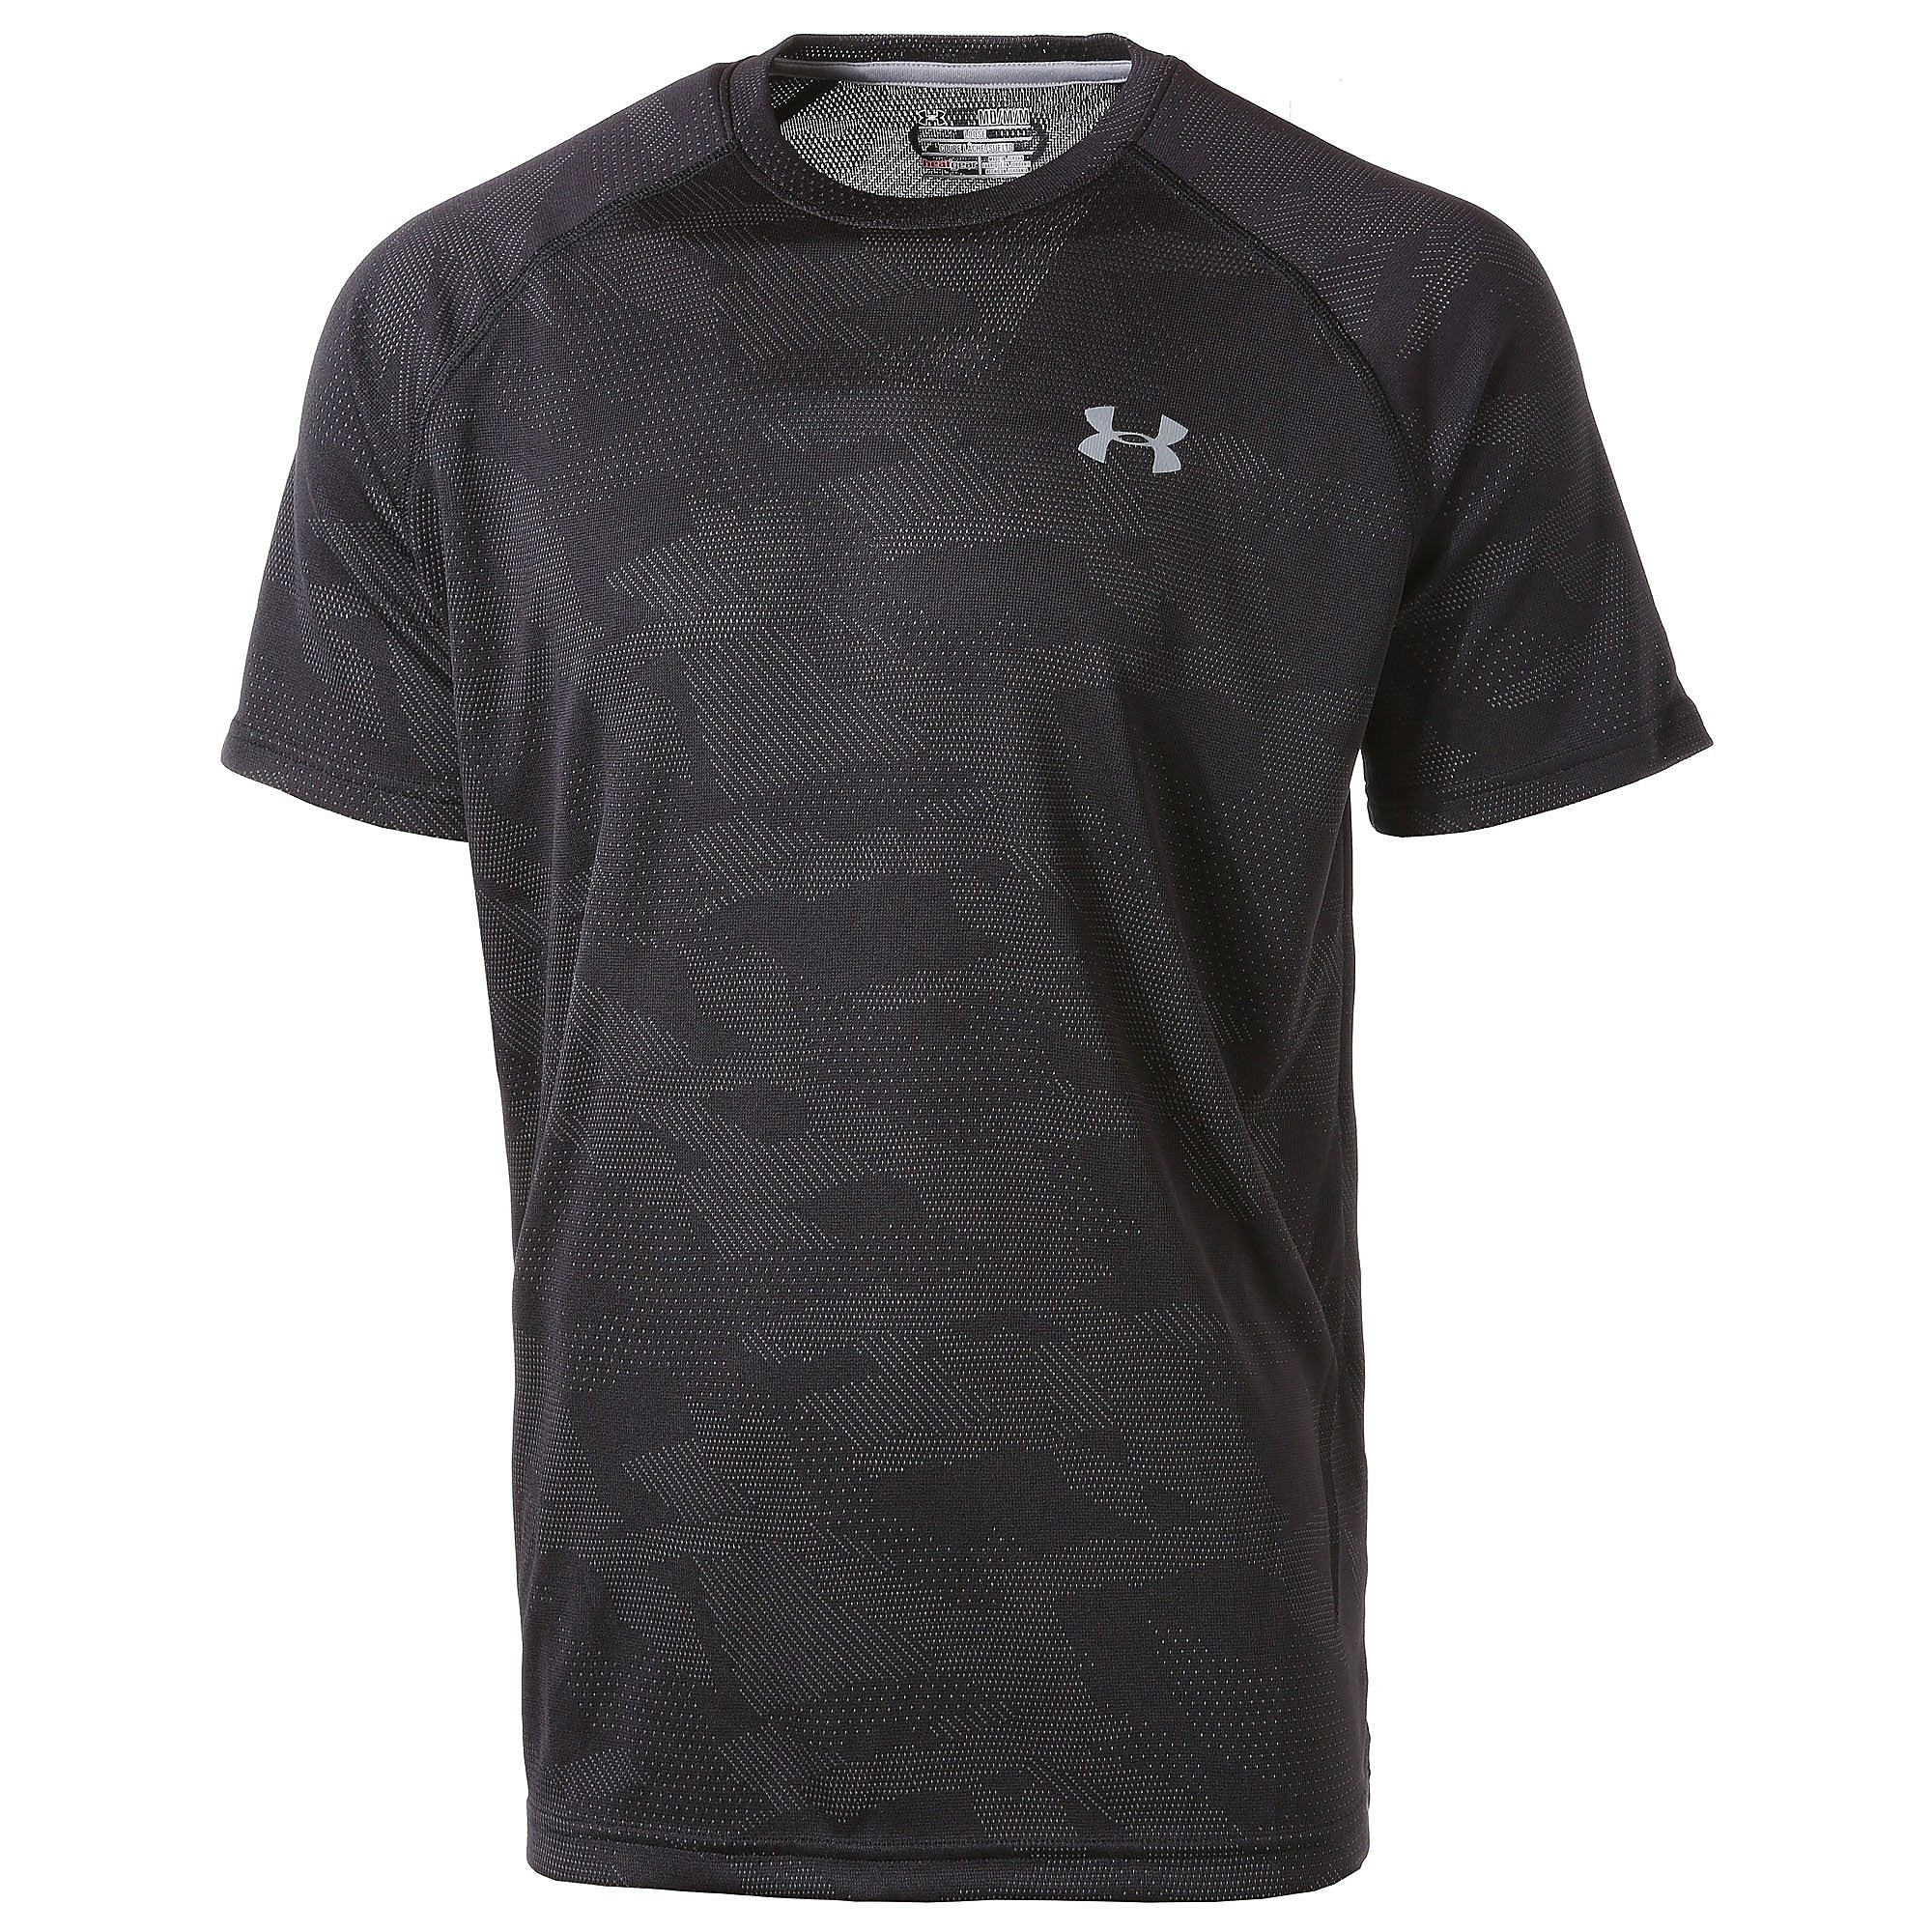 UNDER ARMOUR APFU M TRAI SHRT SS